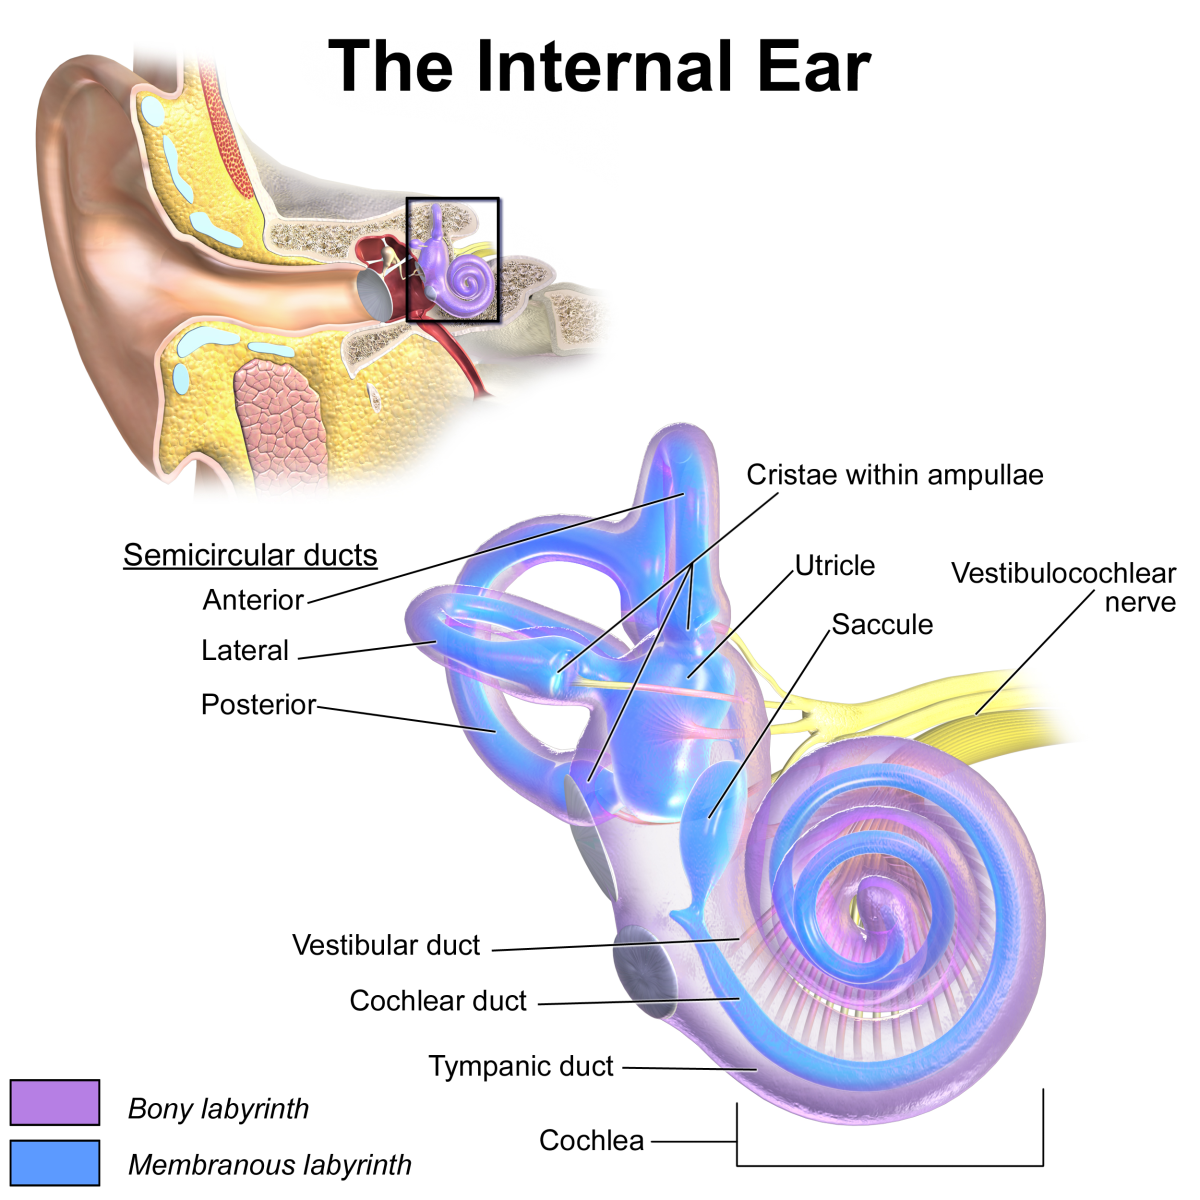 The cochlea in the internal or inner ear is a critical structure for hearing.